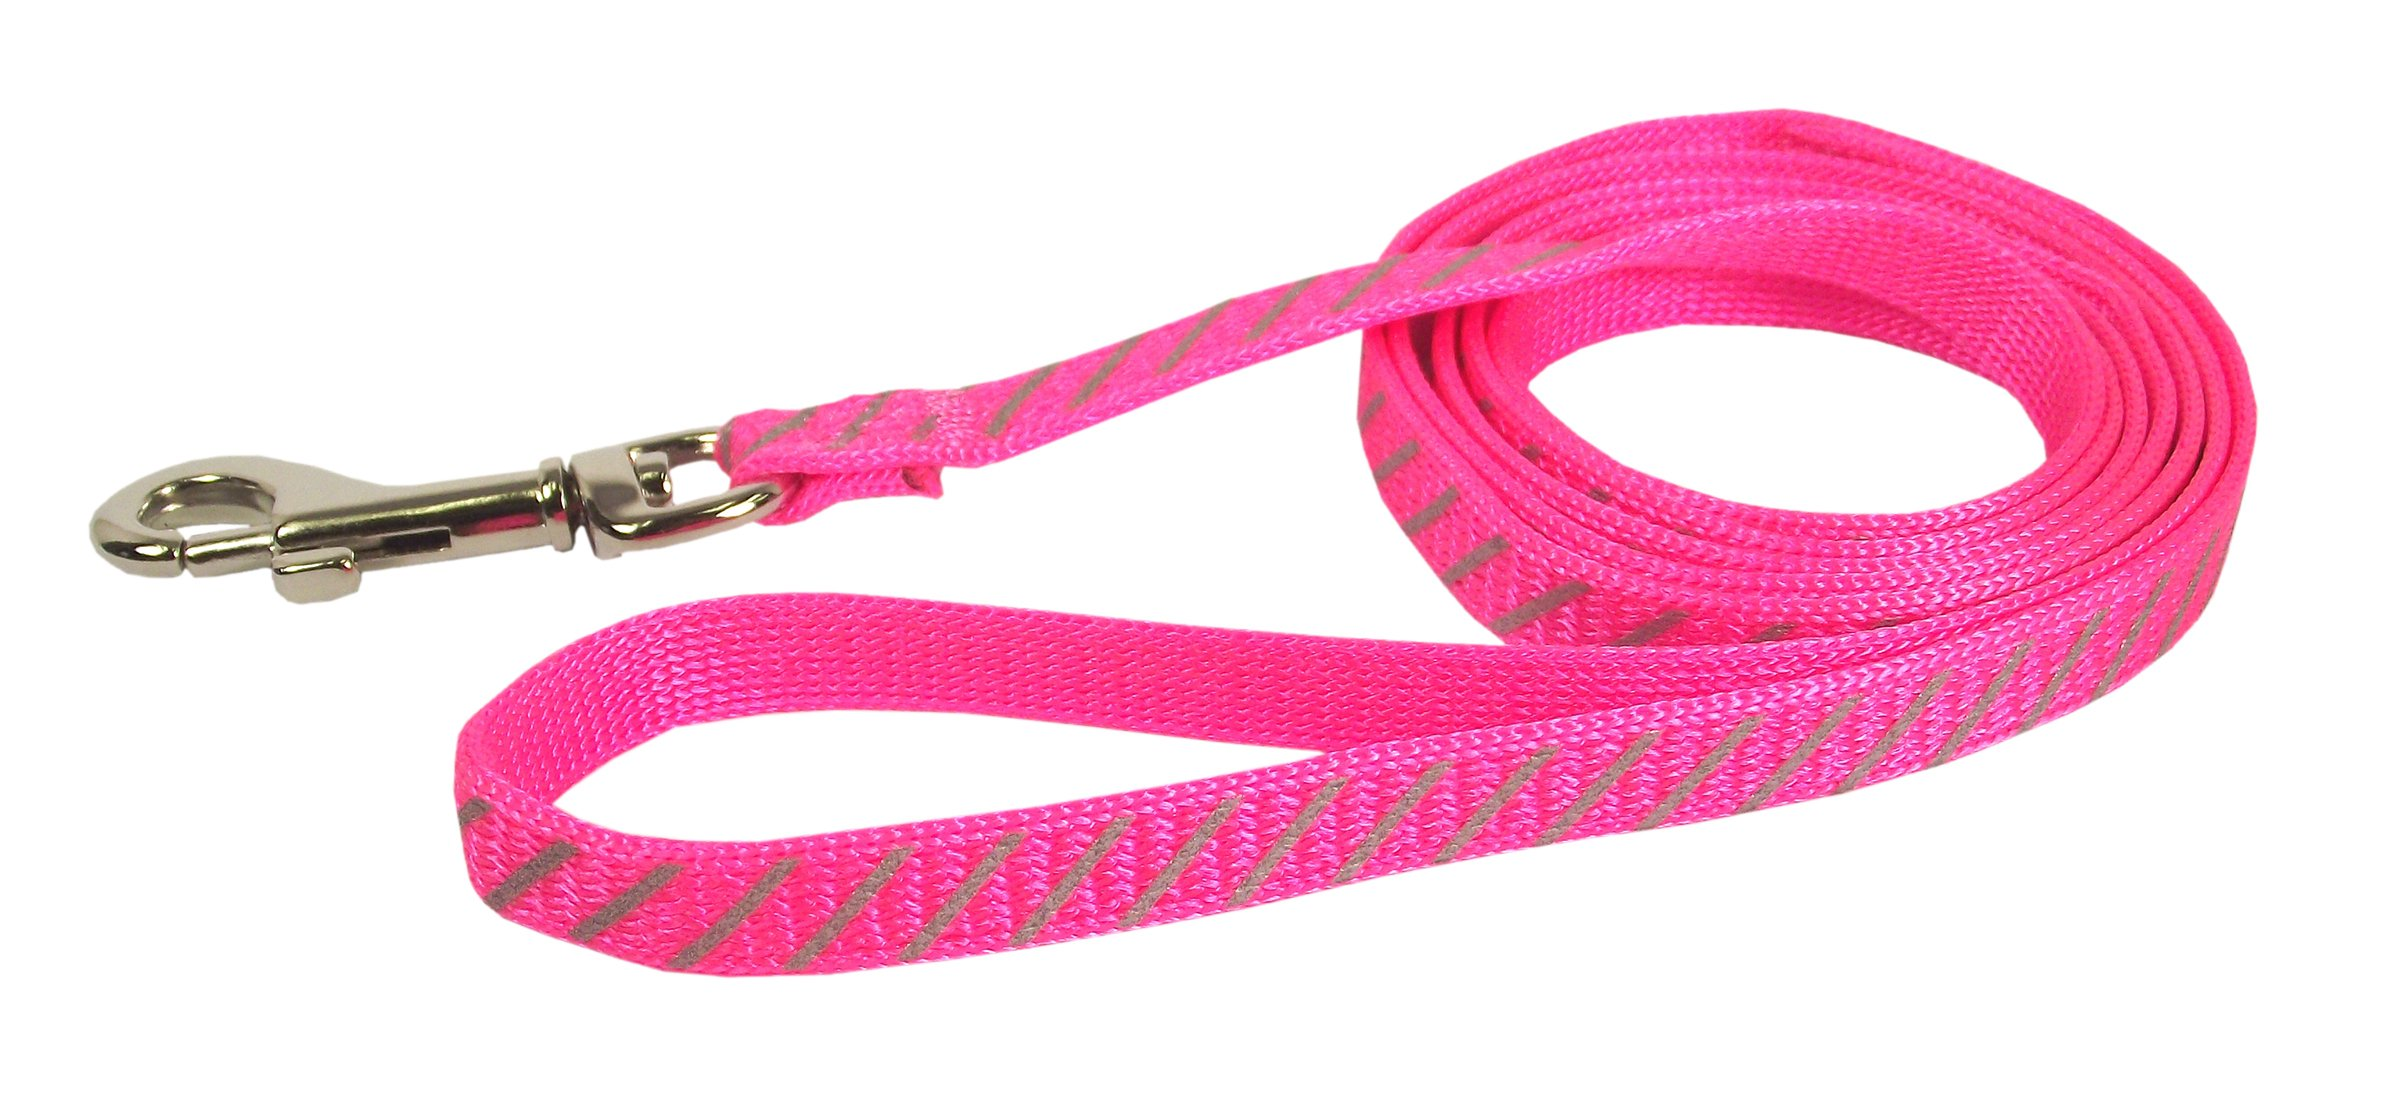 Hamilton Reflective Snag Proof Braided Cat Lead, 3/8-Inch by 4-Feet, Hot Pink